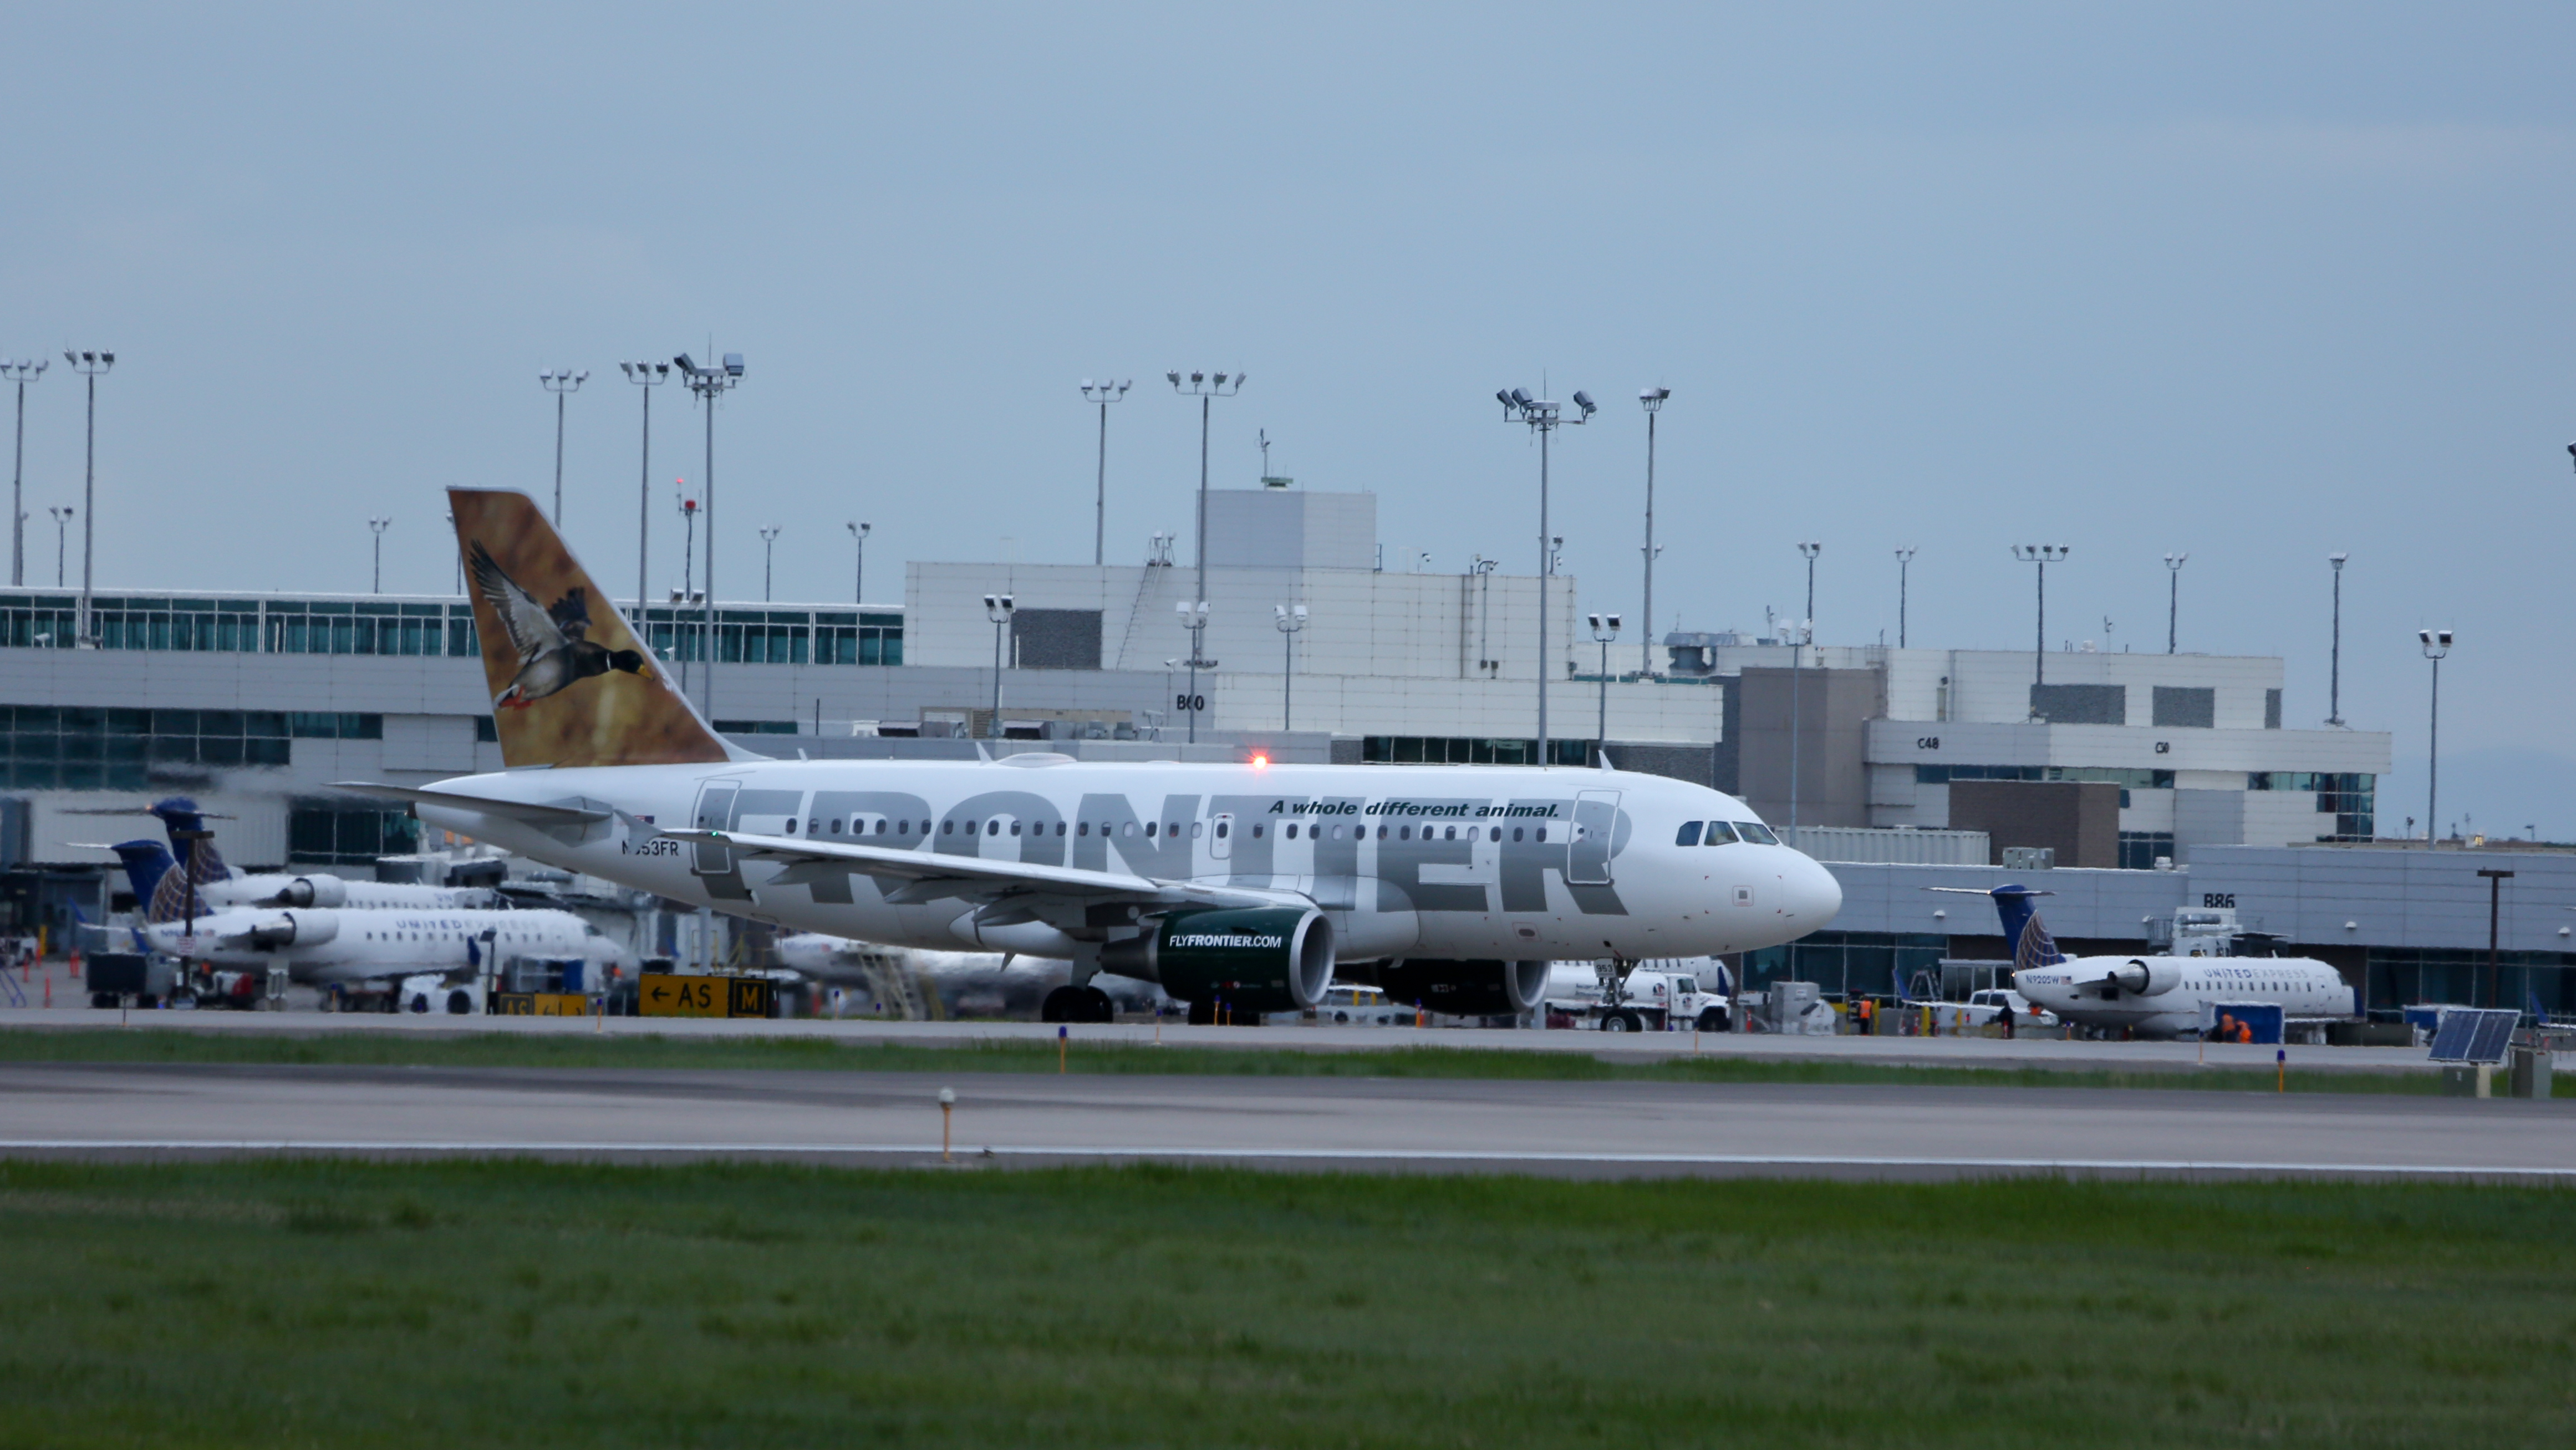 Frontier at DIA